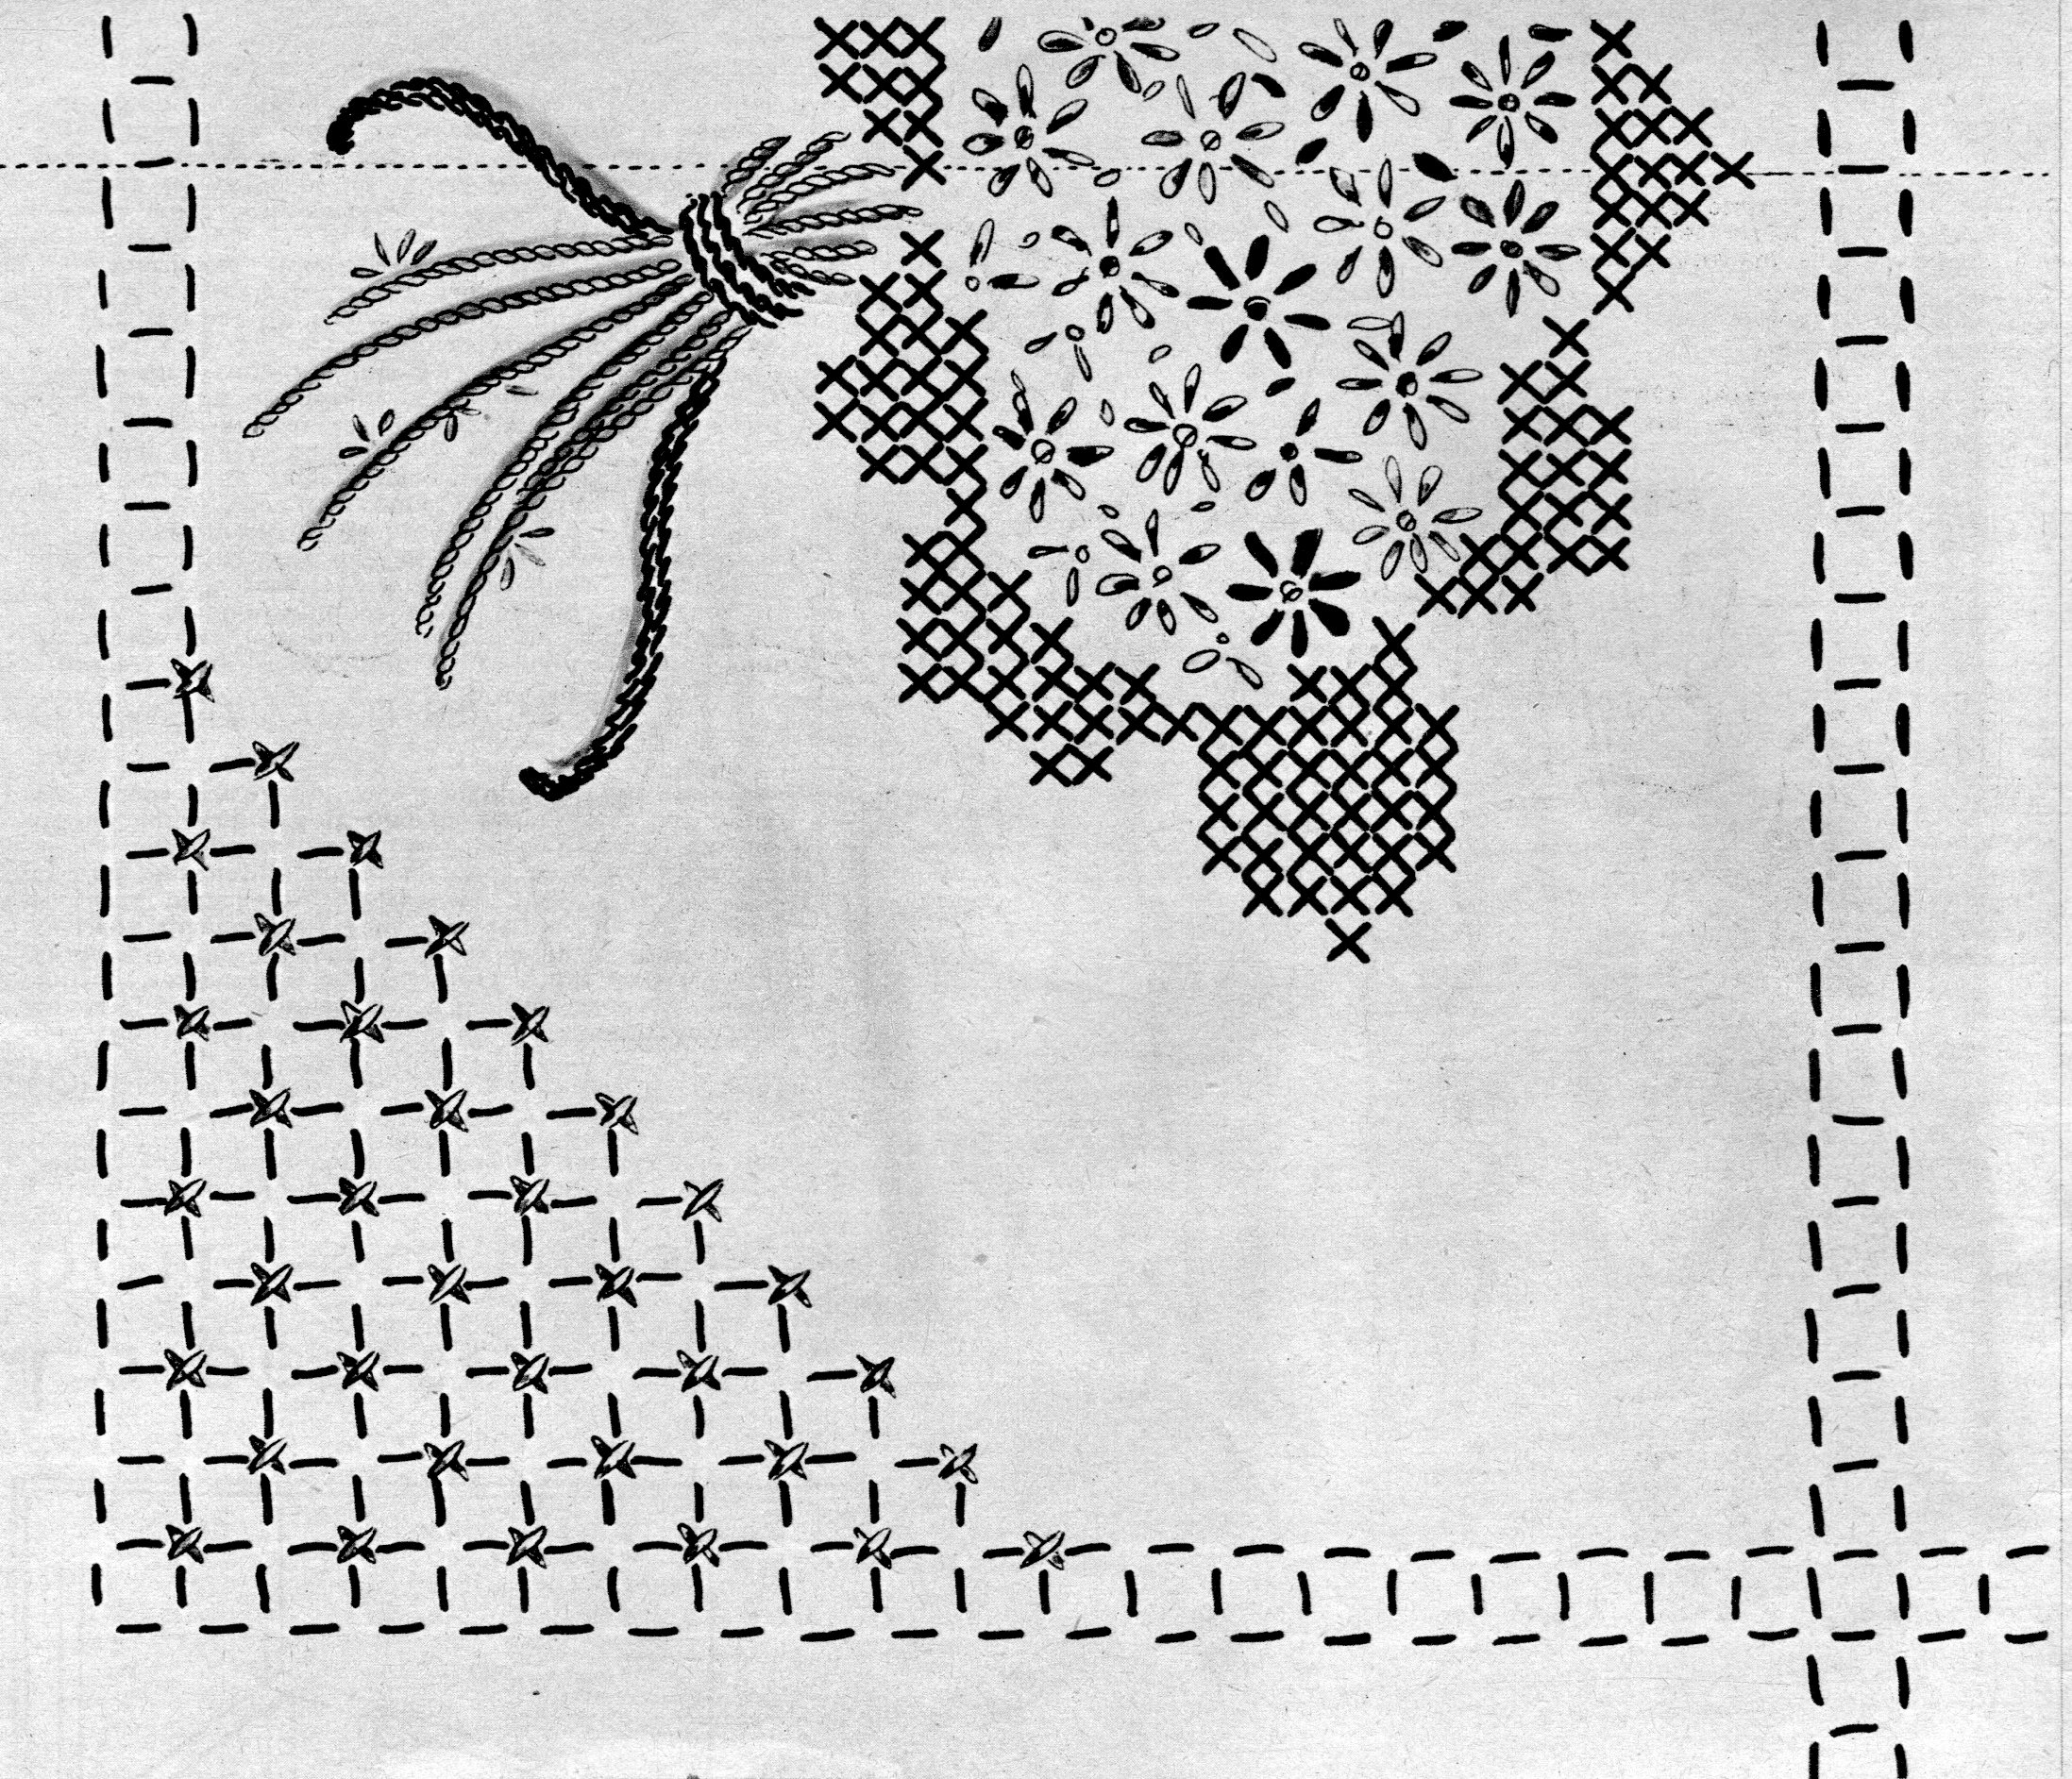 the 1950s-vintage embroidery motif